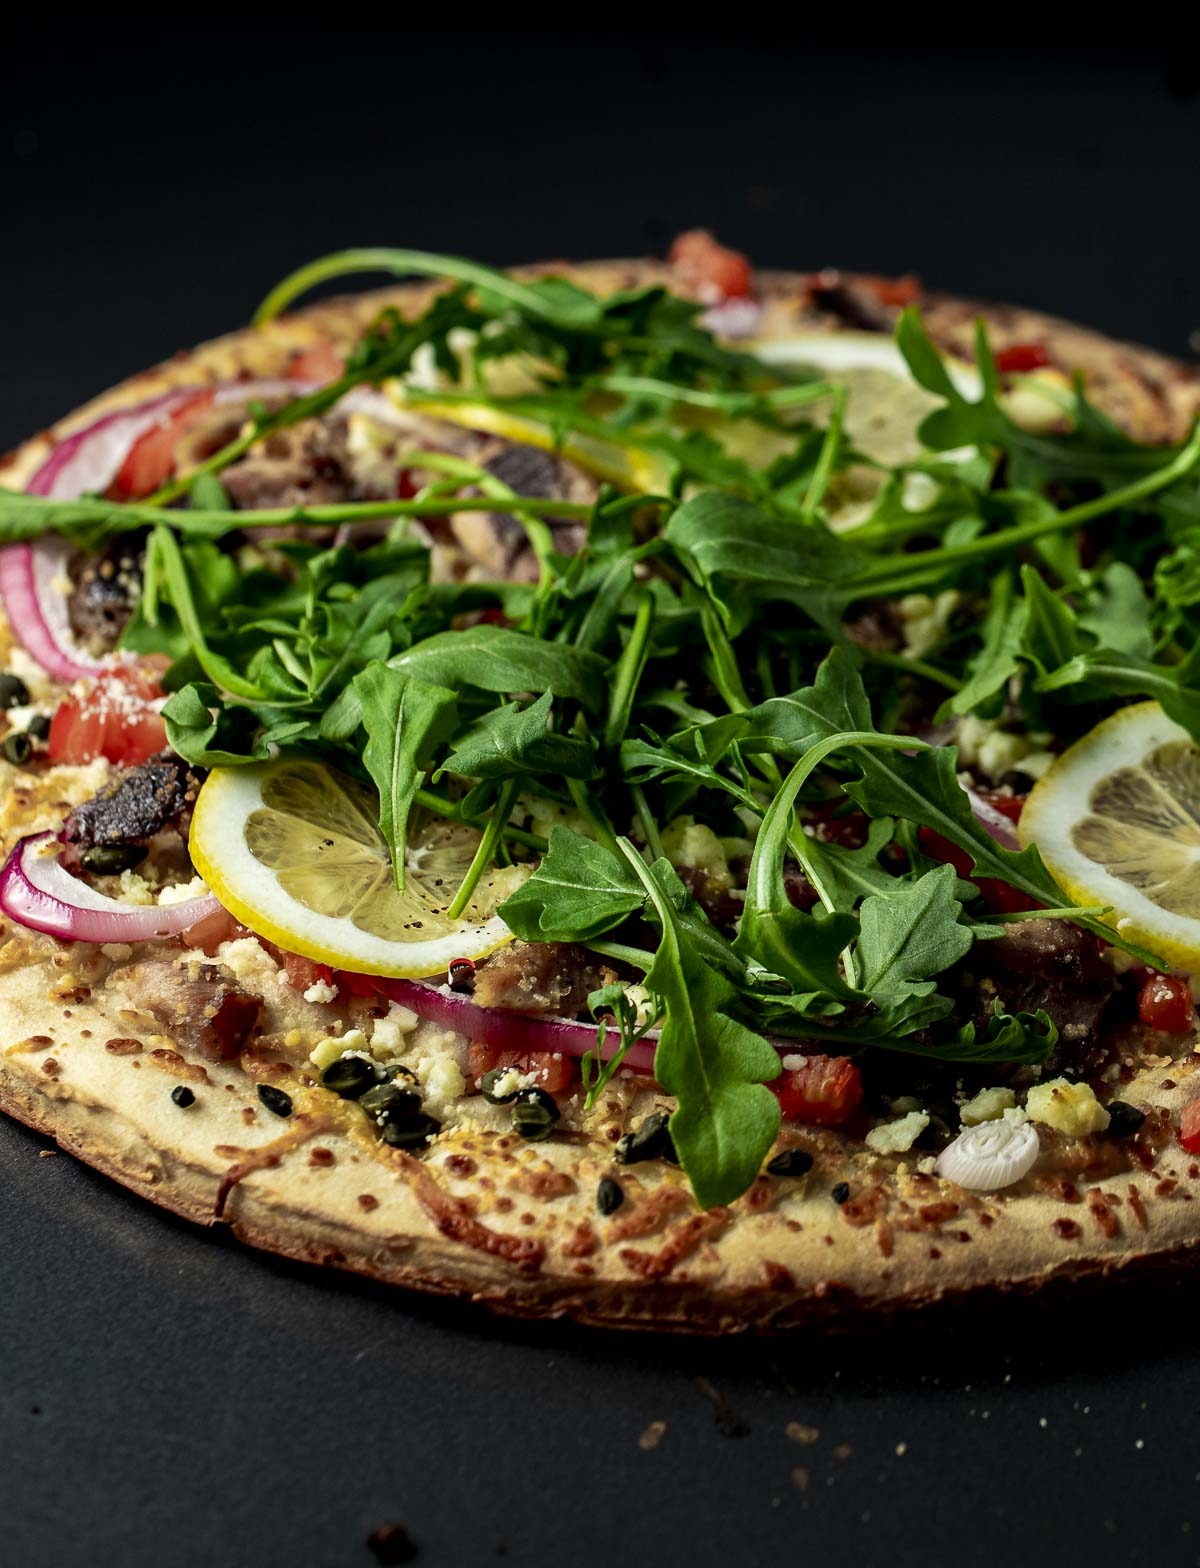 Side view of a whole sardine pizza topped with arugula.